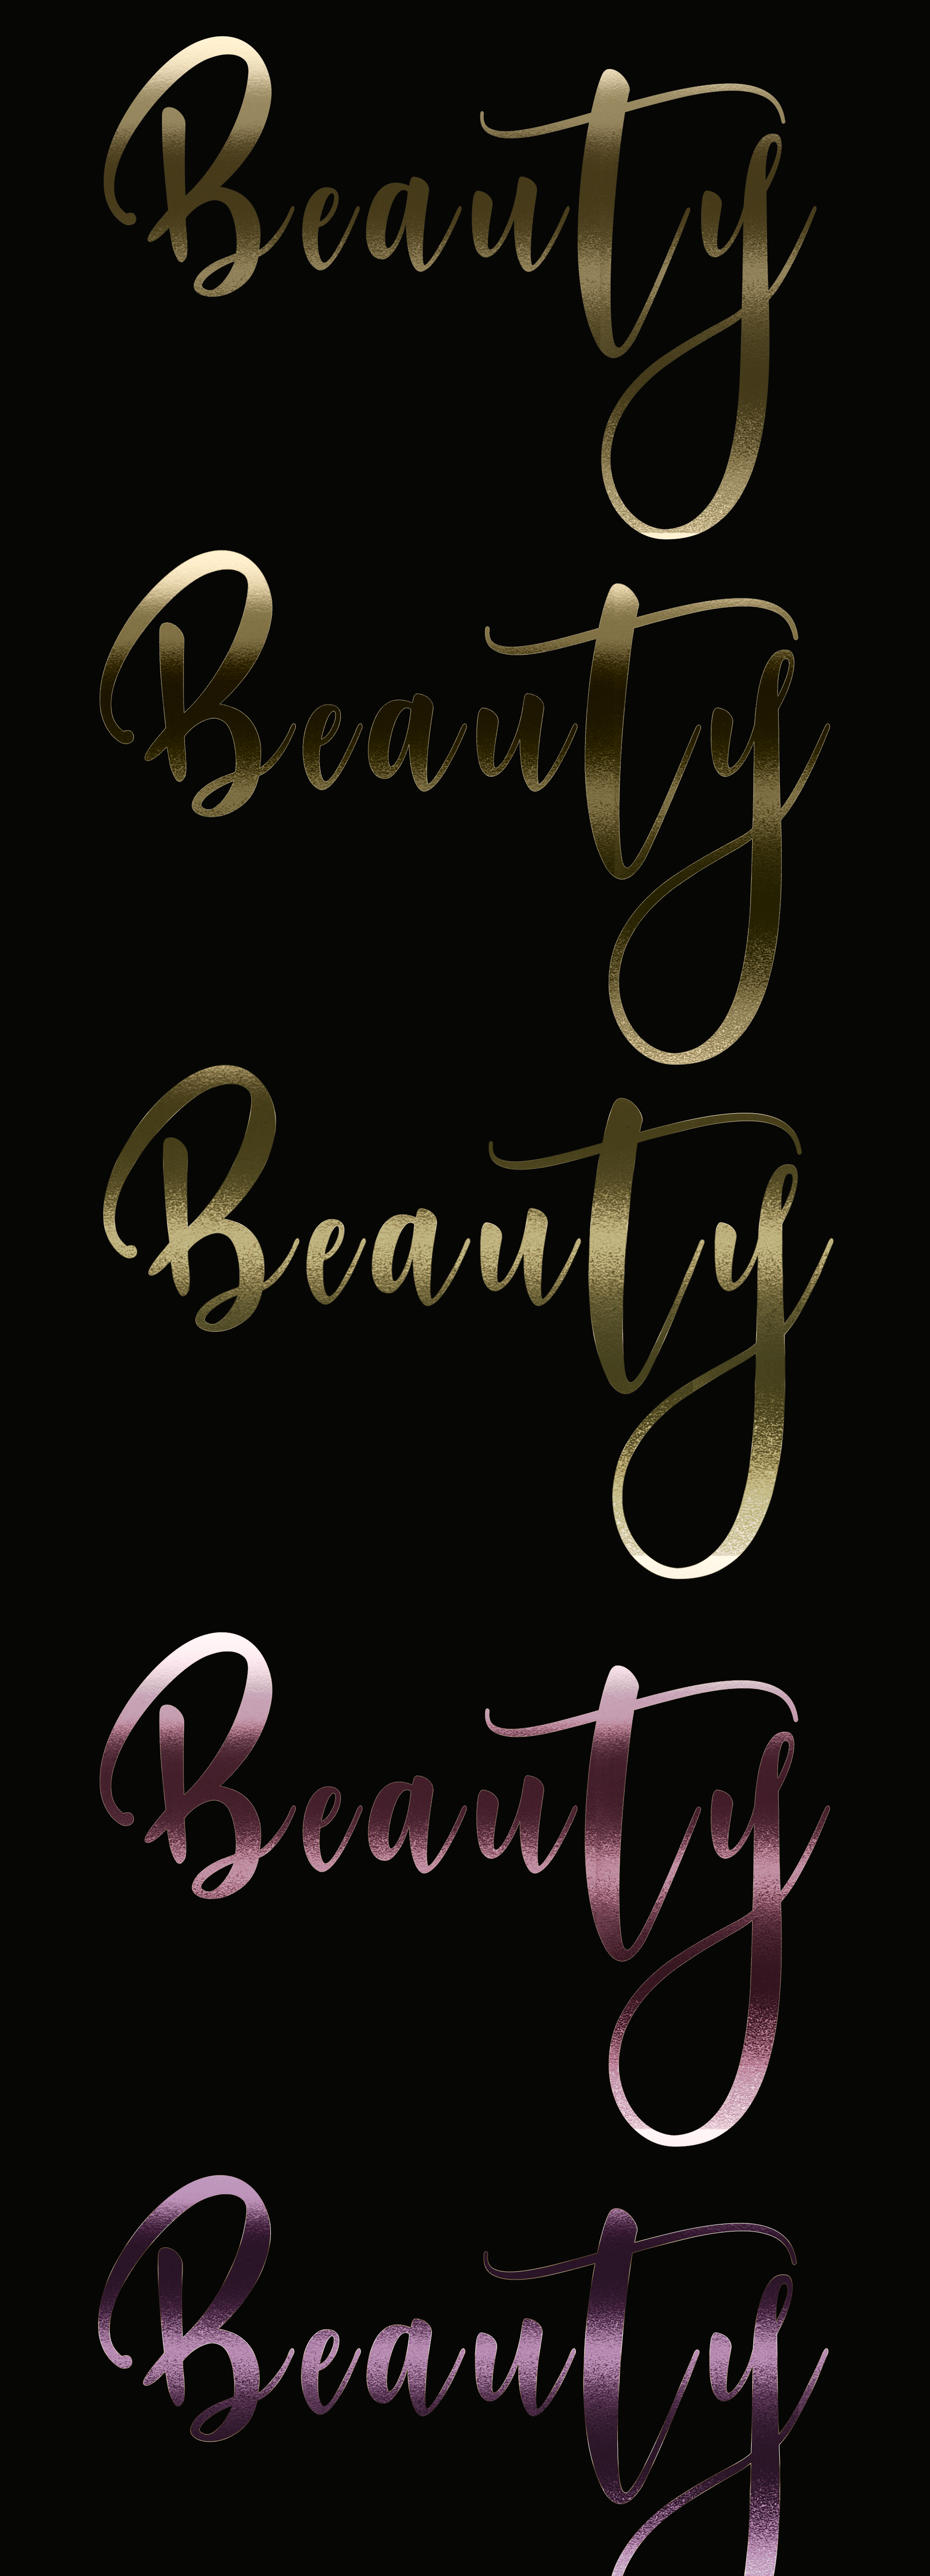 Gold Foil Photoshop Styles includes the tutorial on Behance